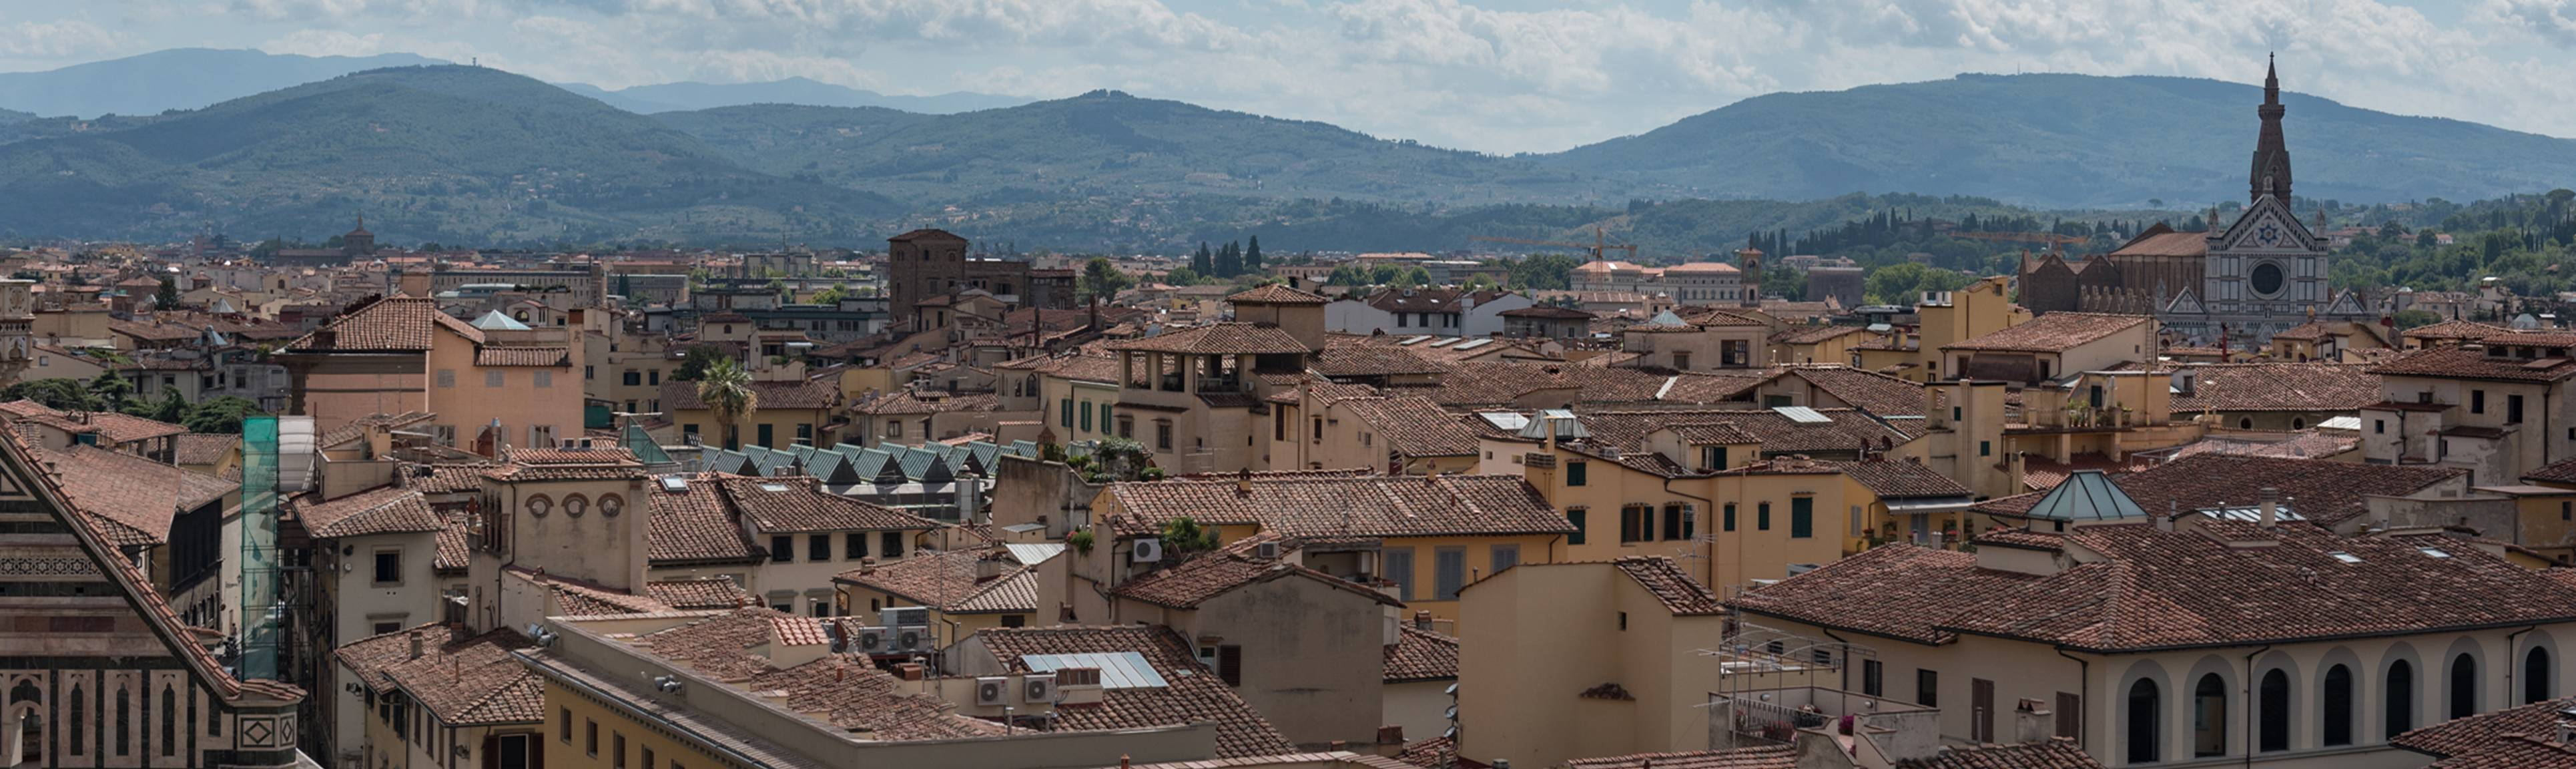 View of the tiled rooftops of Florence, Italy